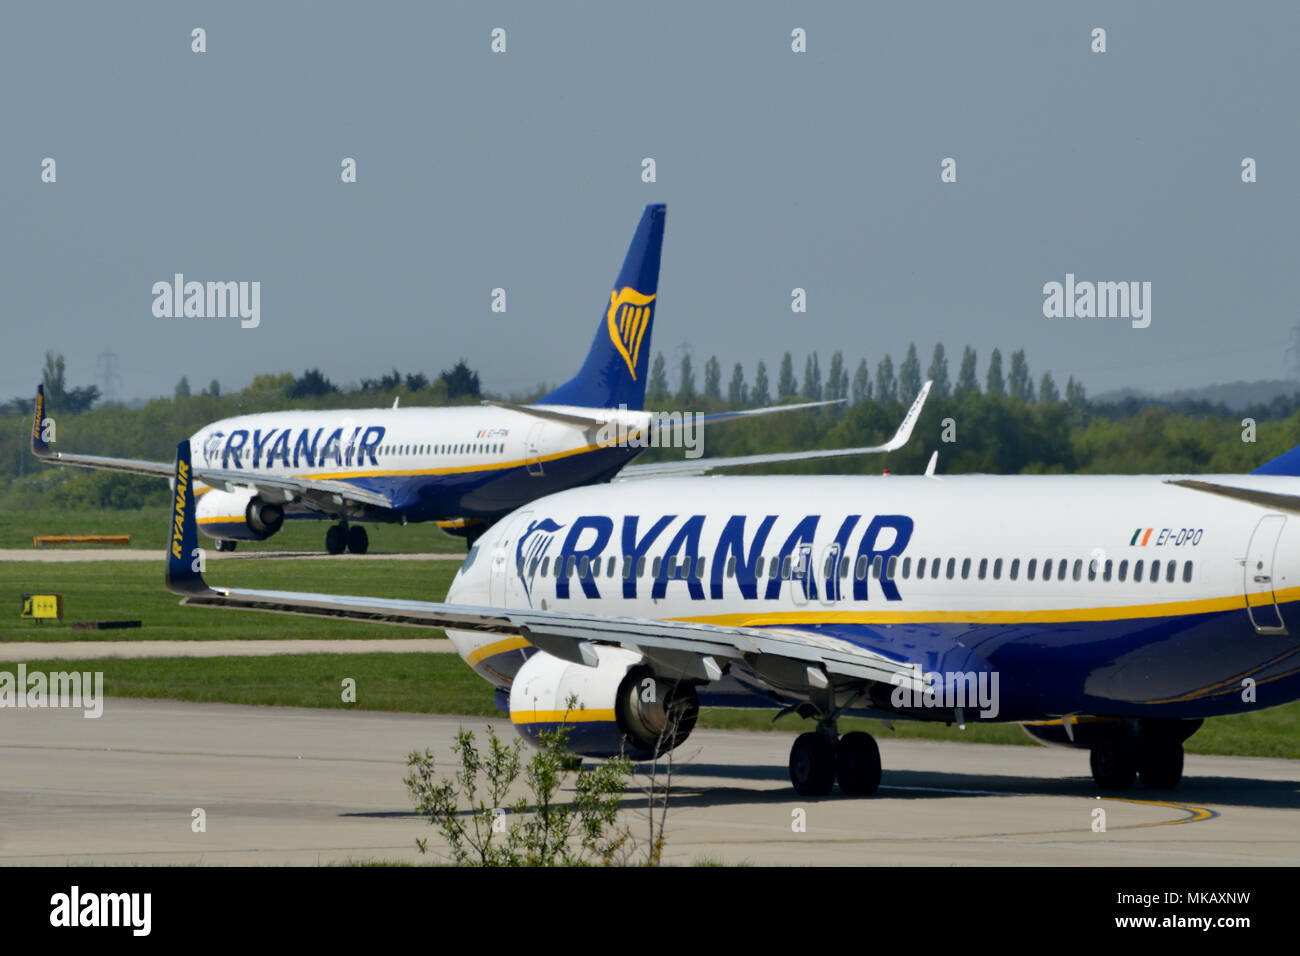 Two Ryanair aircraft at London Stansted Airport - Stock Image